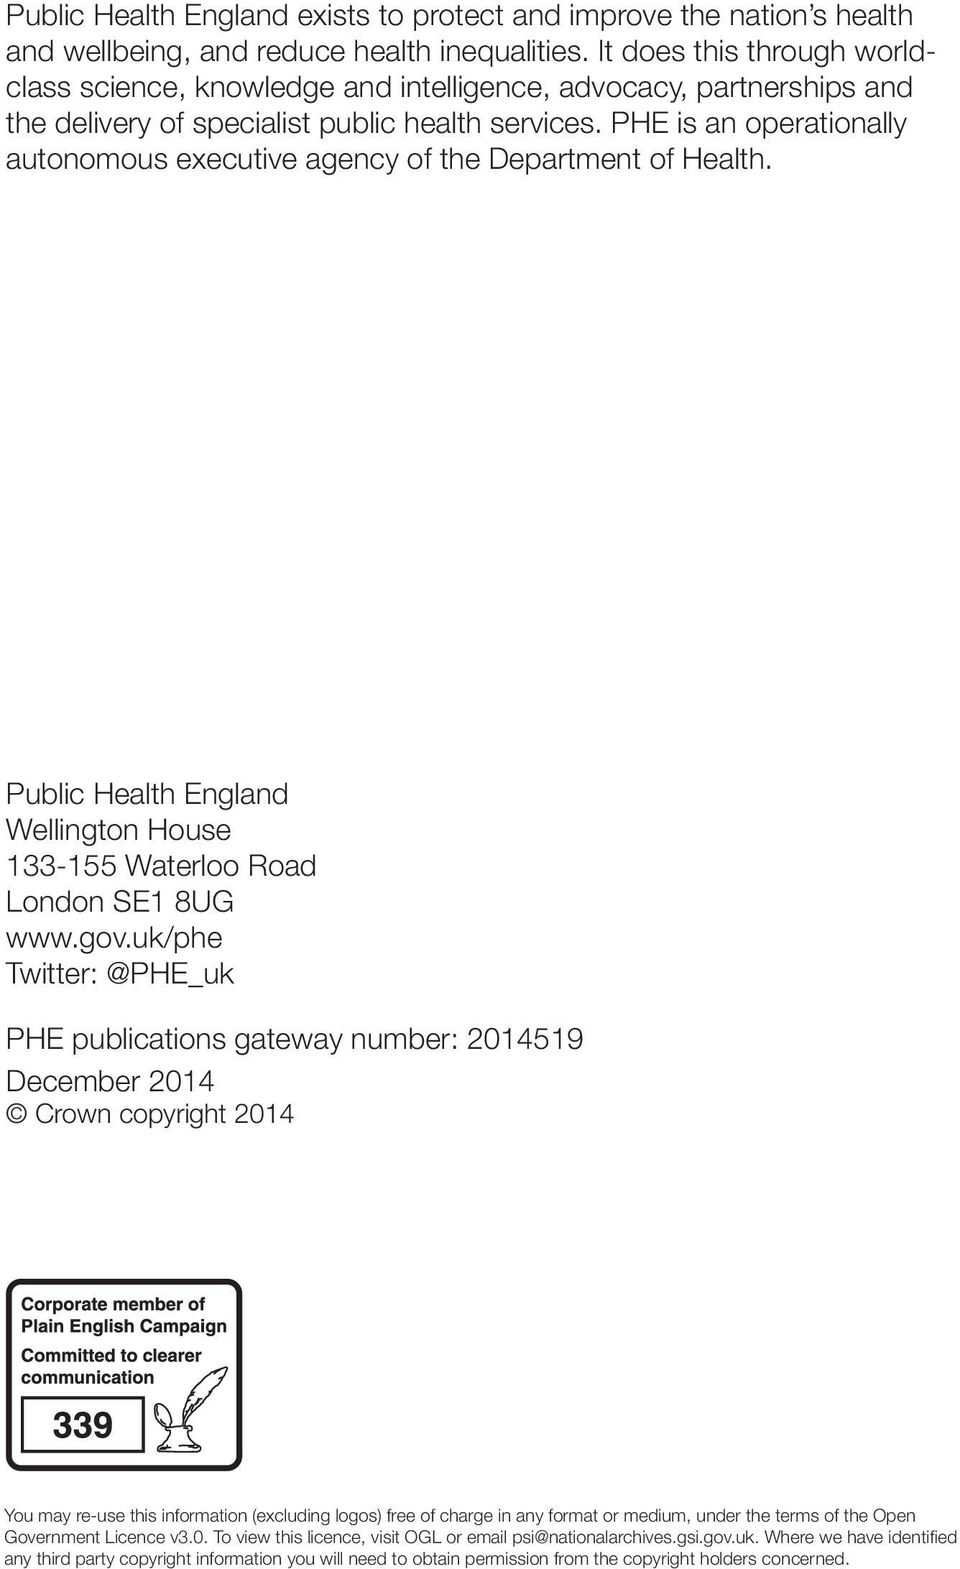 PHE is an operationally autonomous executive agency of the Department of Health. Public Health England Wellington House 133-155 Waterloo Road London SE1 8UG www.gov.